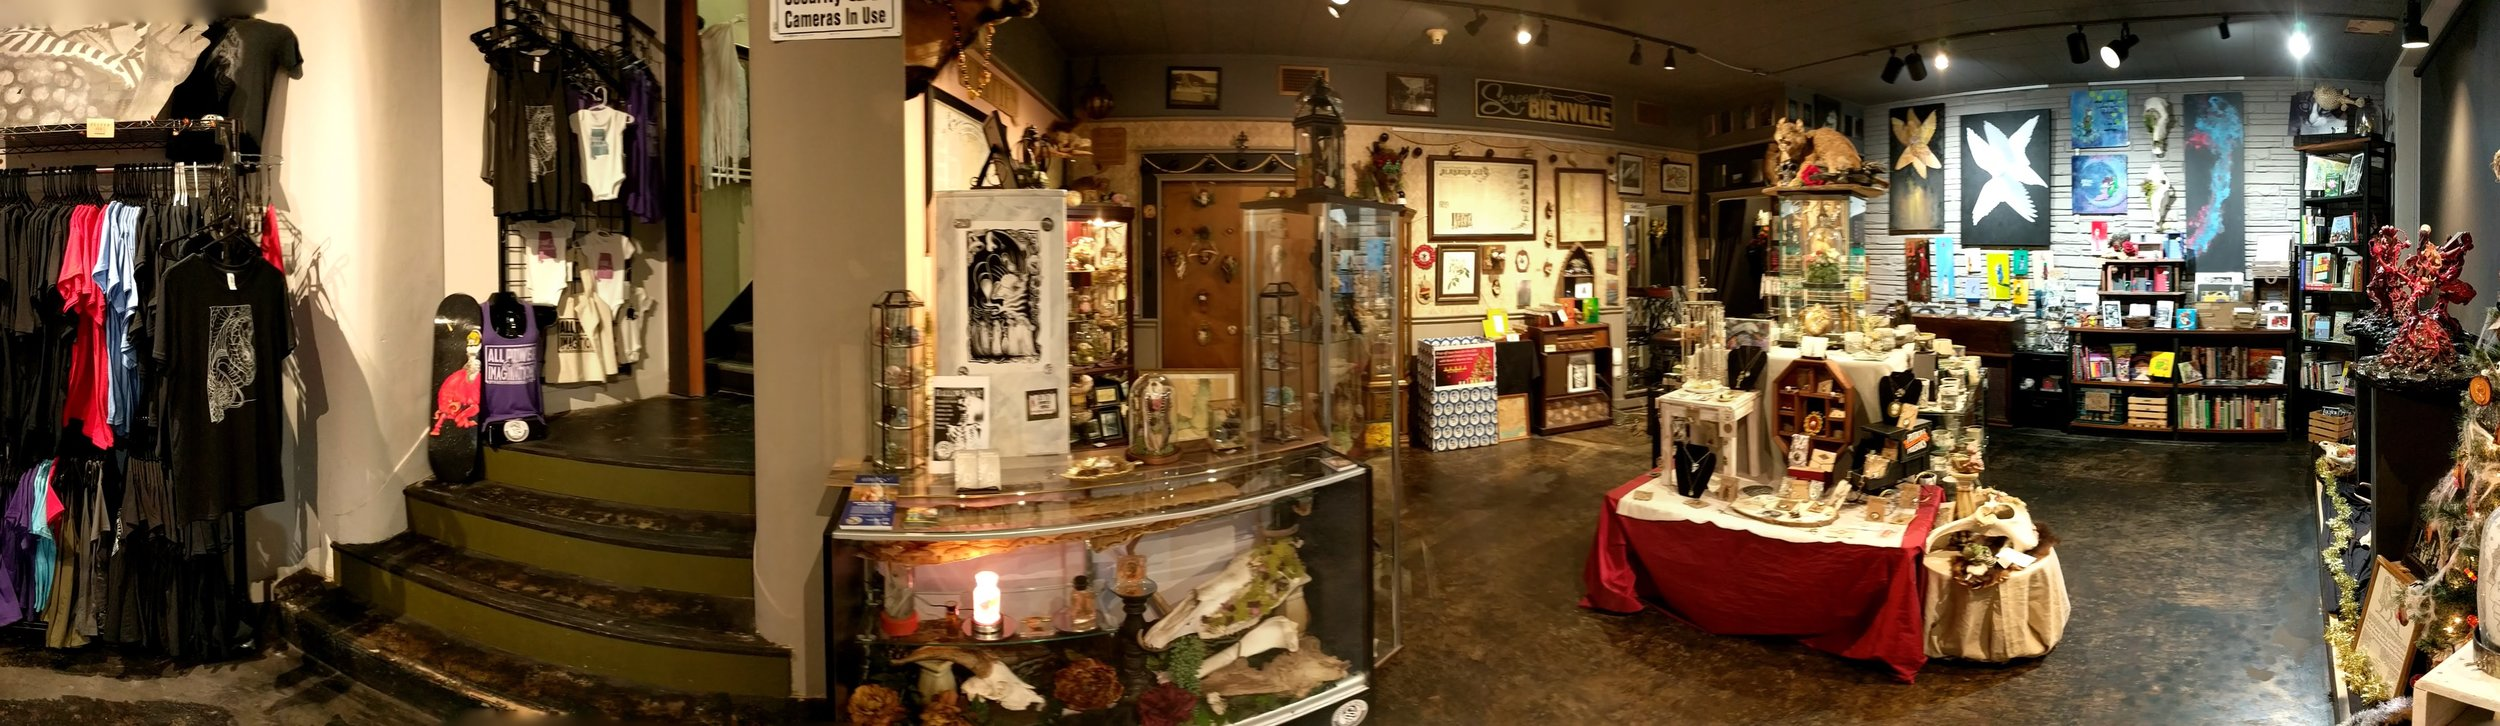 A view inside of the Serpents of Bienville Store located at 754 Government Street in downtown Mobile, Alabama